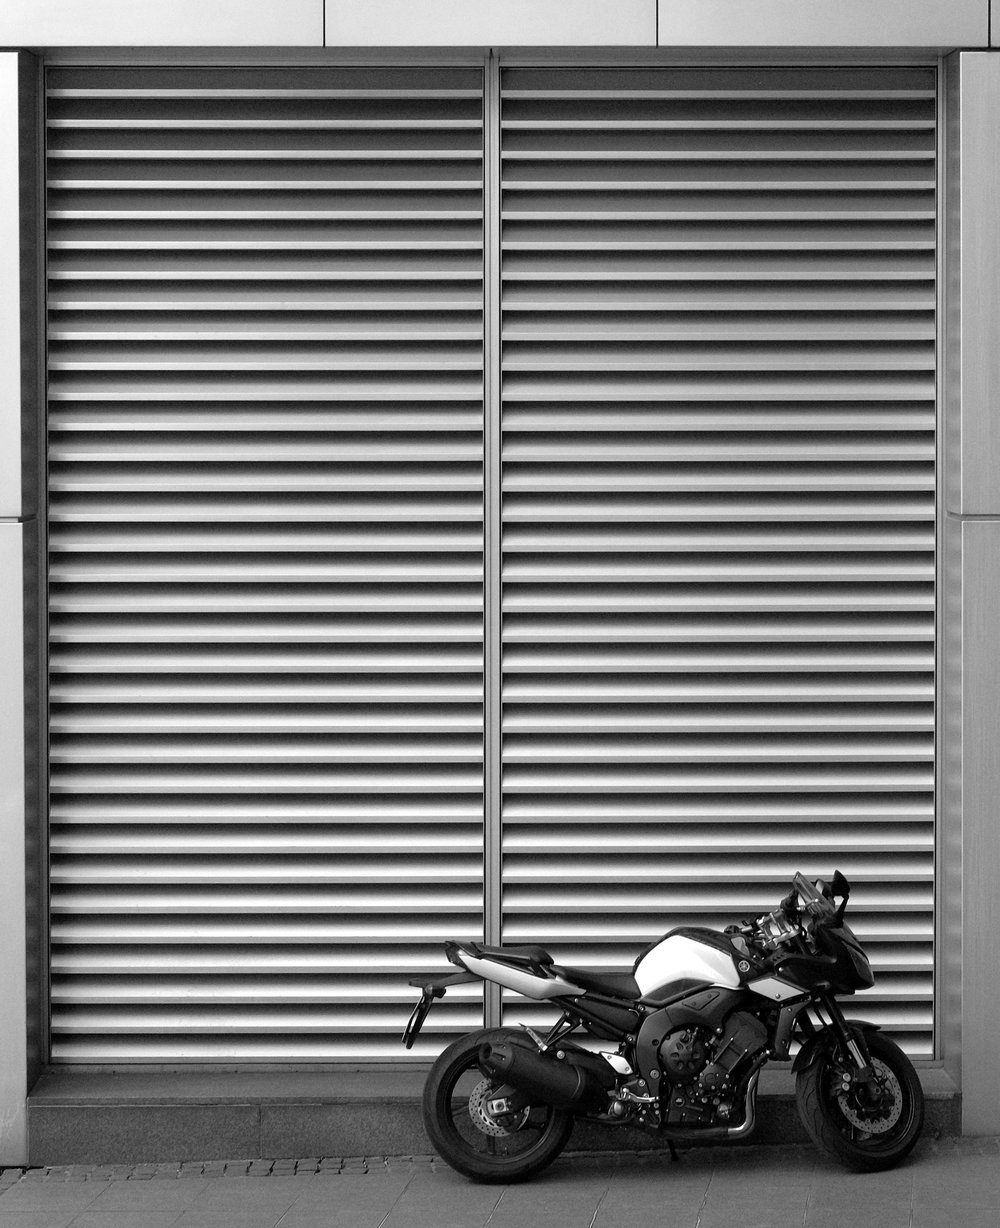 pexels-photo bike.jpg